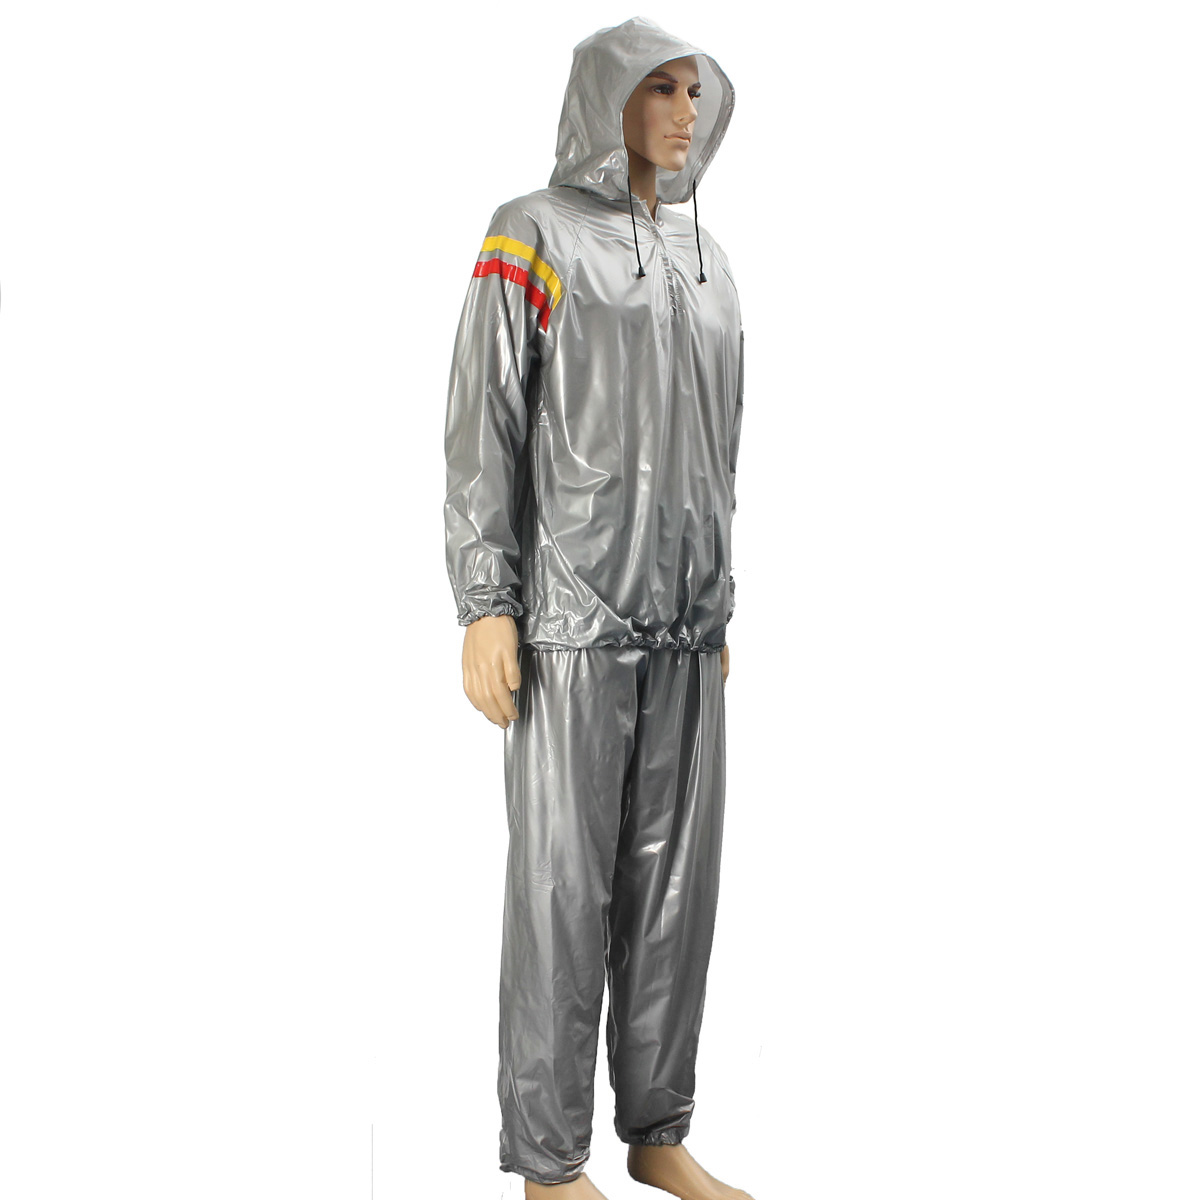 Buy zentai Silver Unisex Shiny Metallic Zentai Suit [] - Order processing time working entefile.gq can put in your measurements or refer to our size chart to choose a .